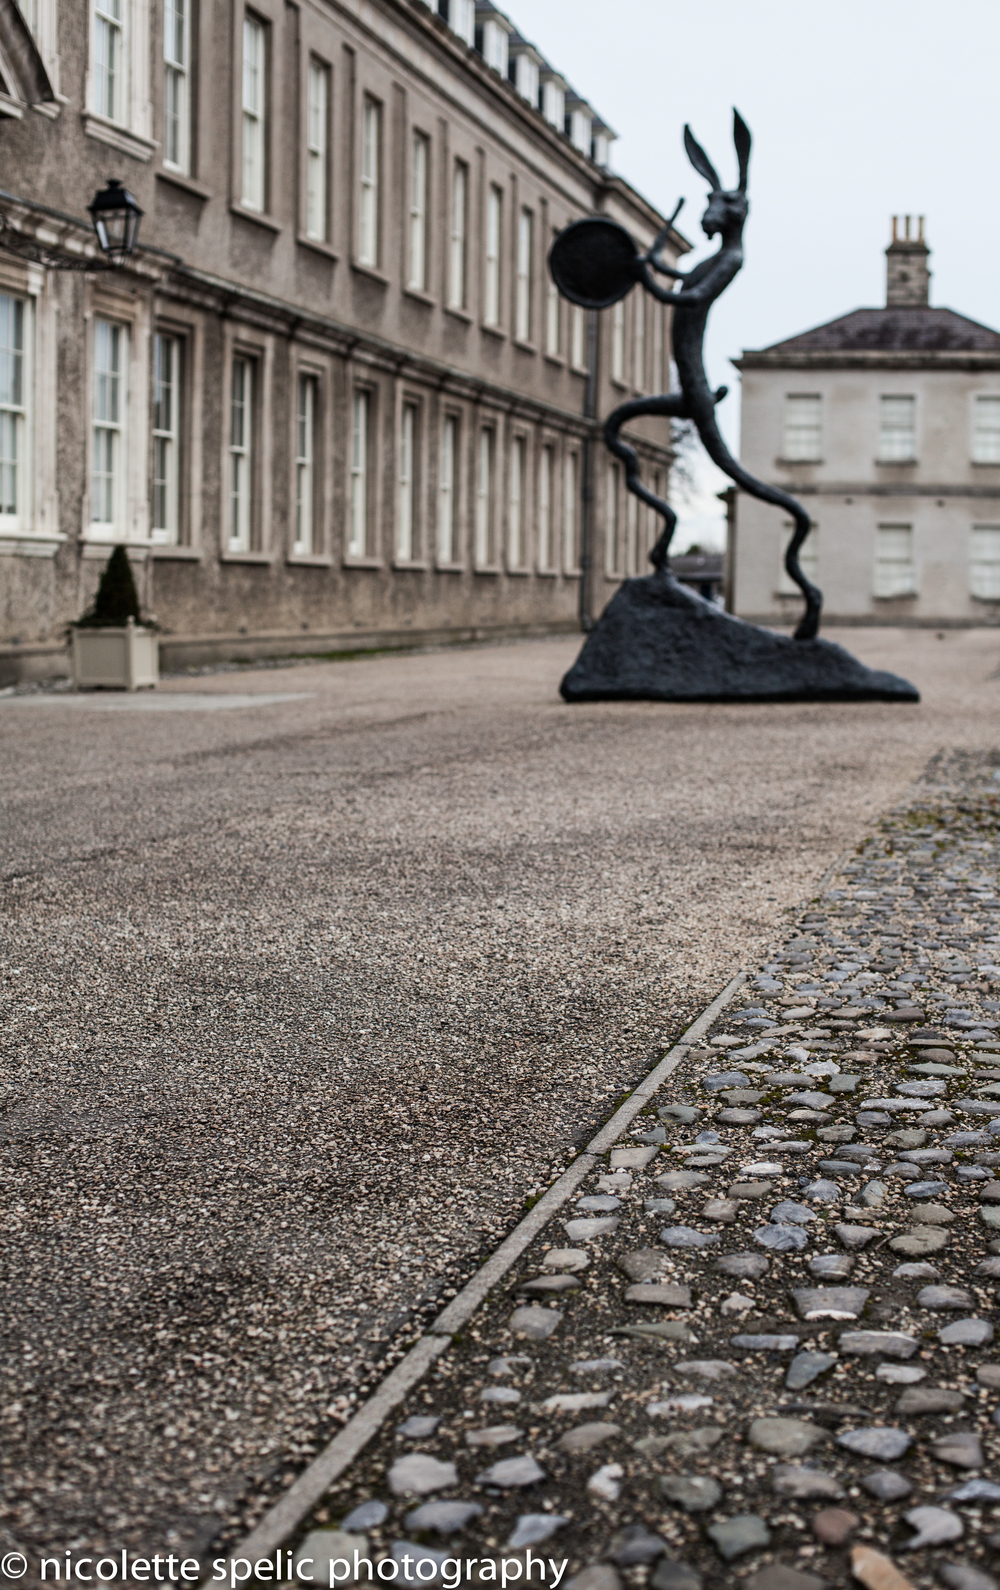 kilmainham_royal_hospital_01142015-1-of-26.jpg